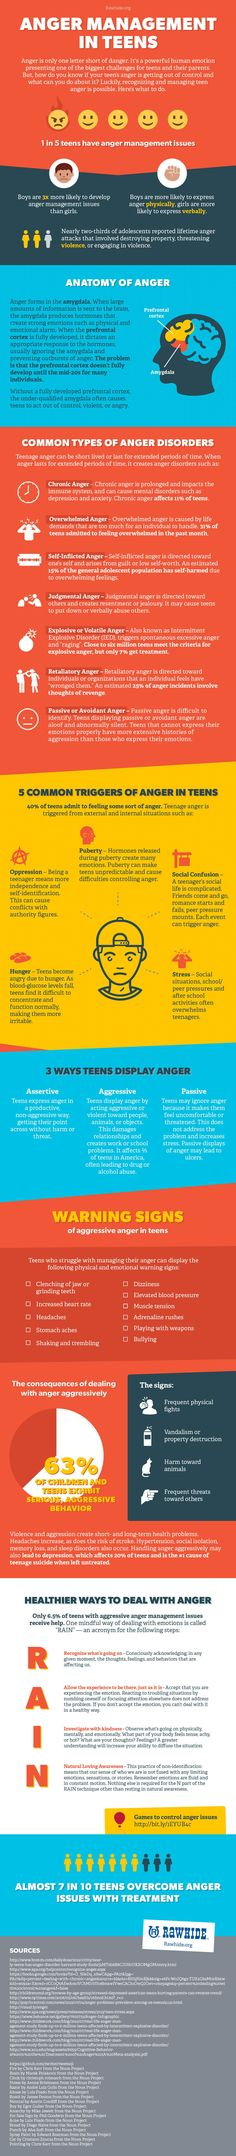 Boys are three times more likely to develop anger management issues. For more information check out our Anger Management Infogrpahic. #ParentingTeens